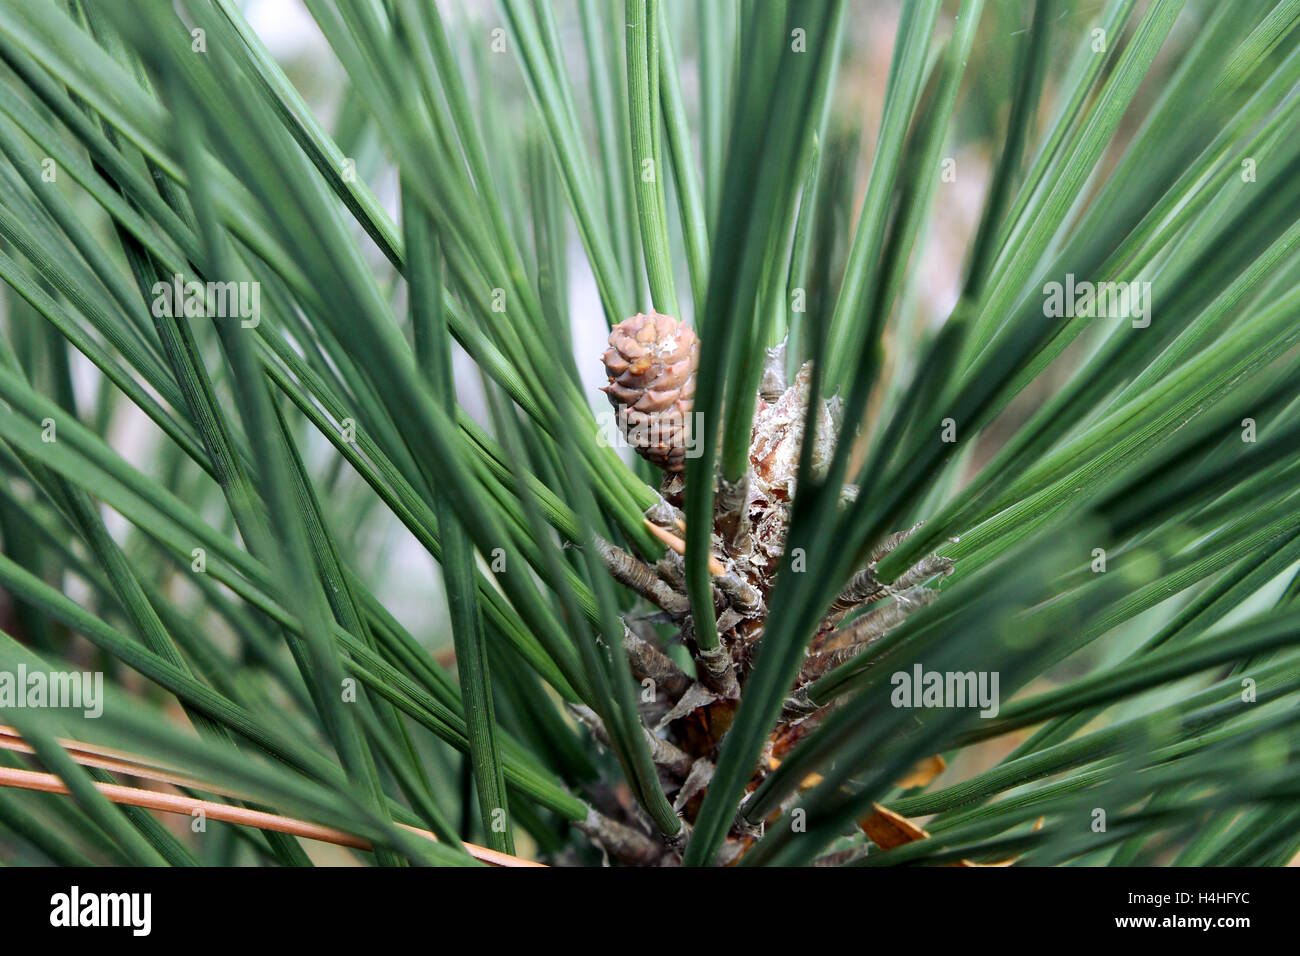 A green conifer tree branch. - Stock Image